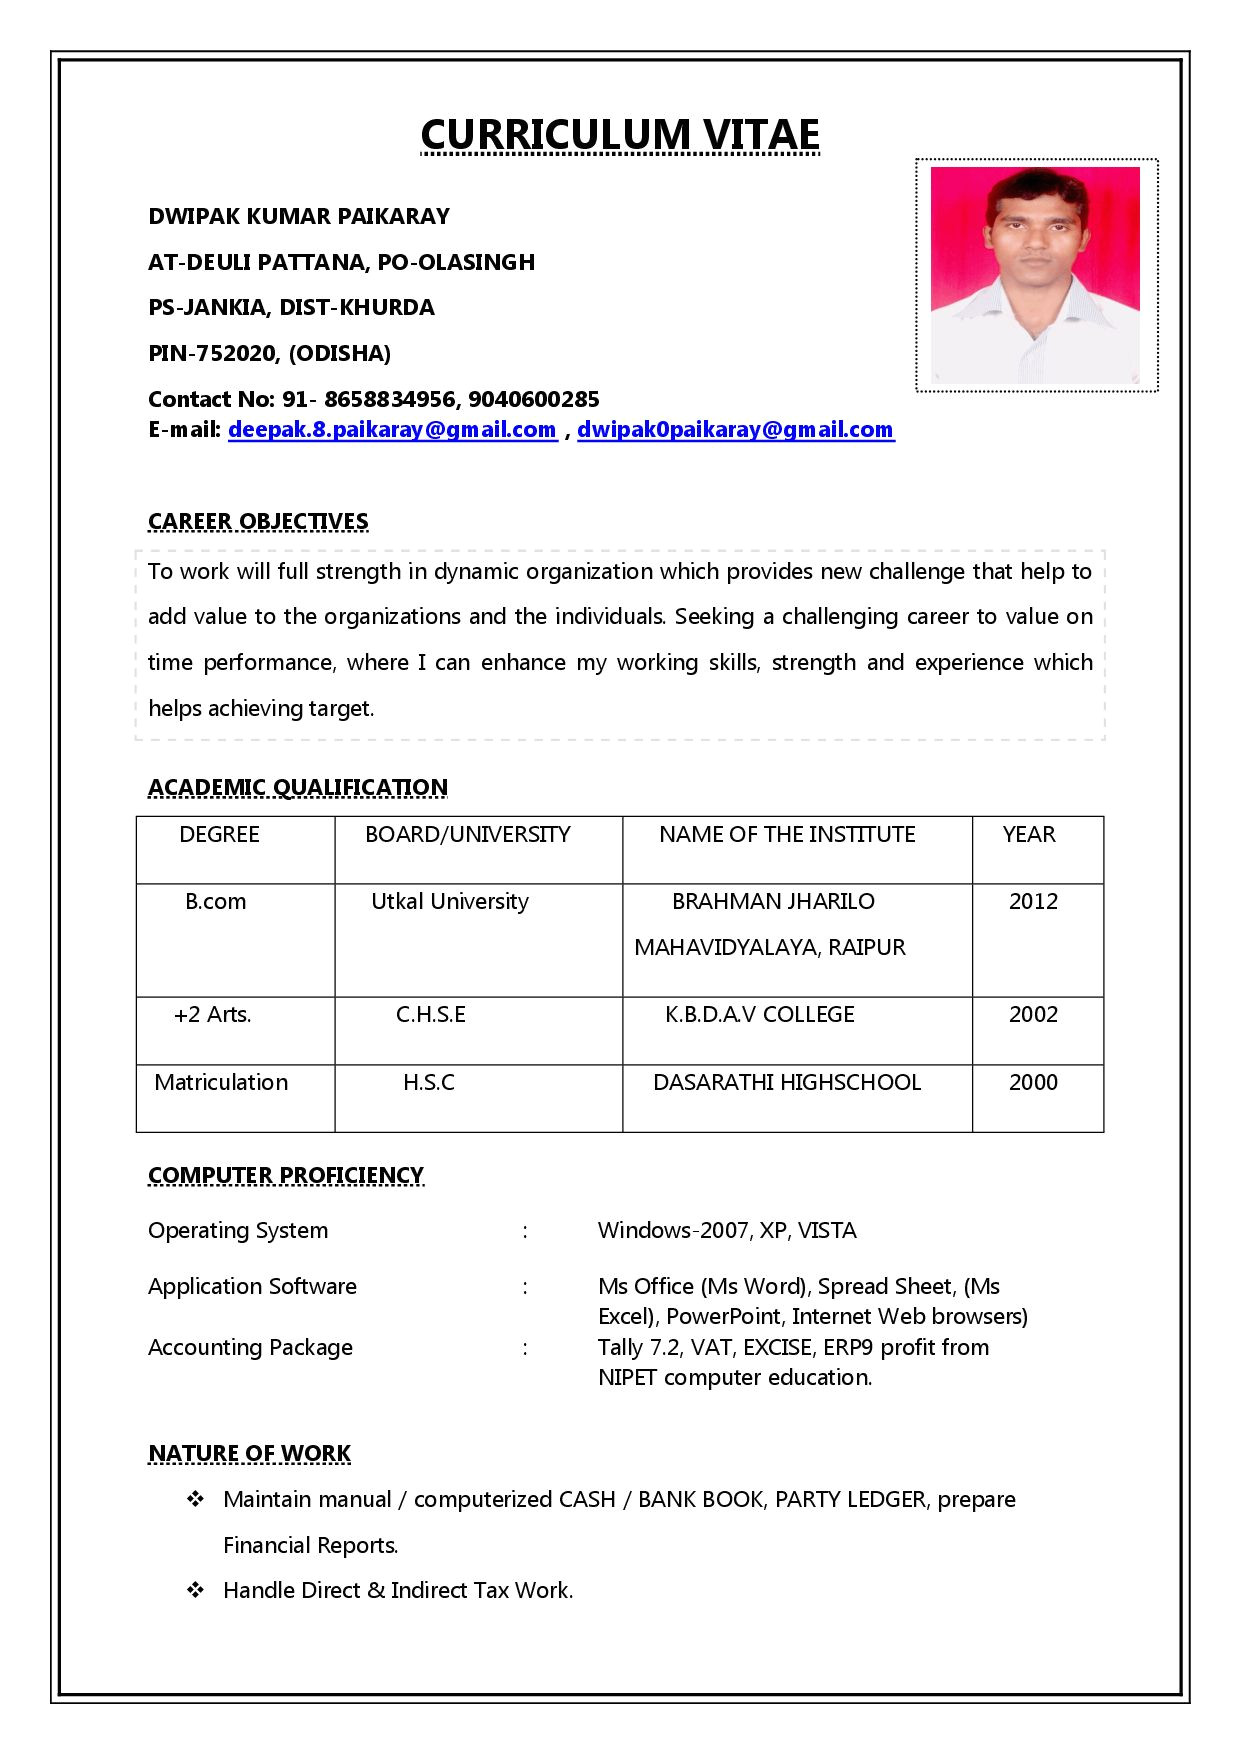 A Simple Resume format for Job Job Interview 3 Resume format Job Resume format